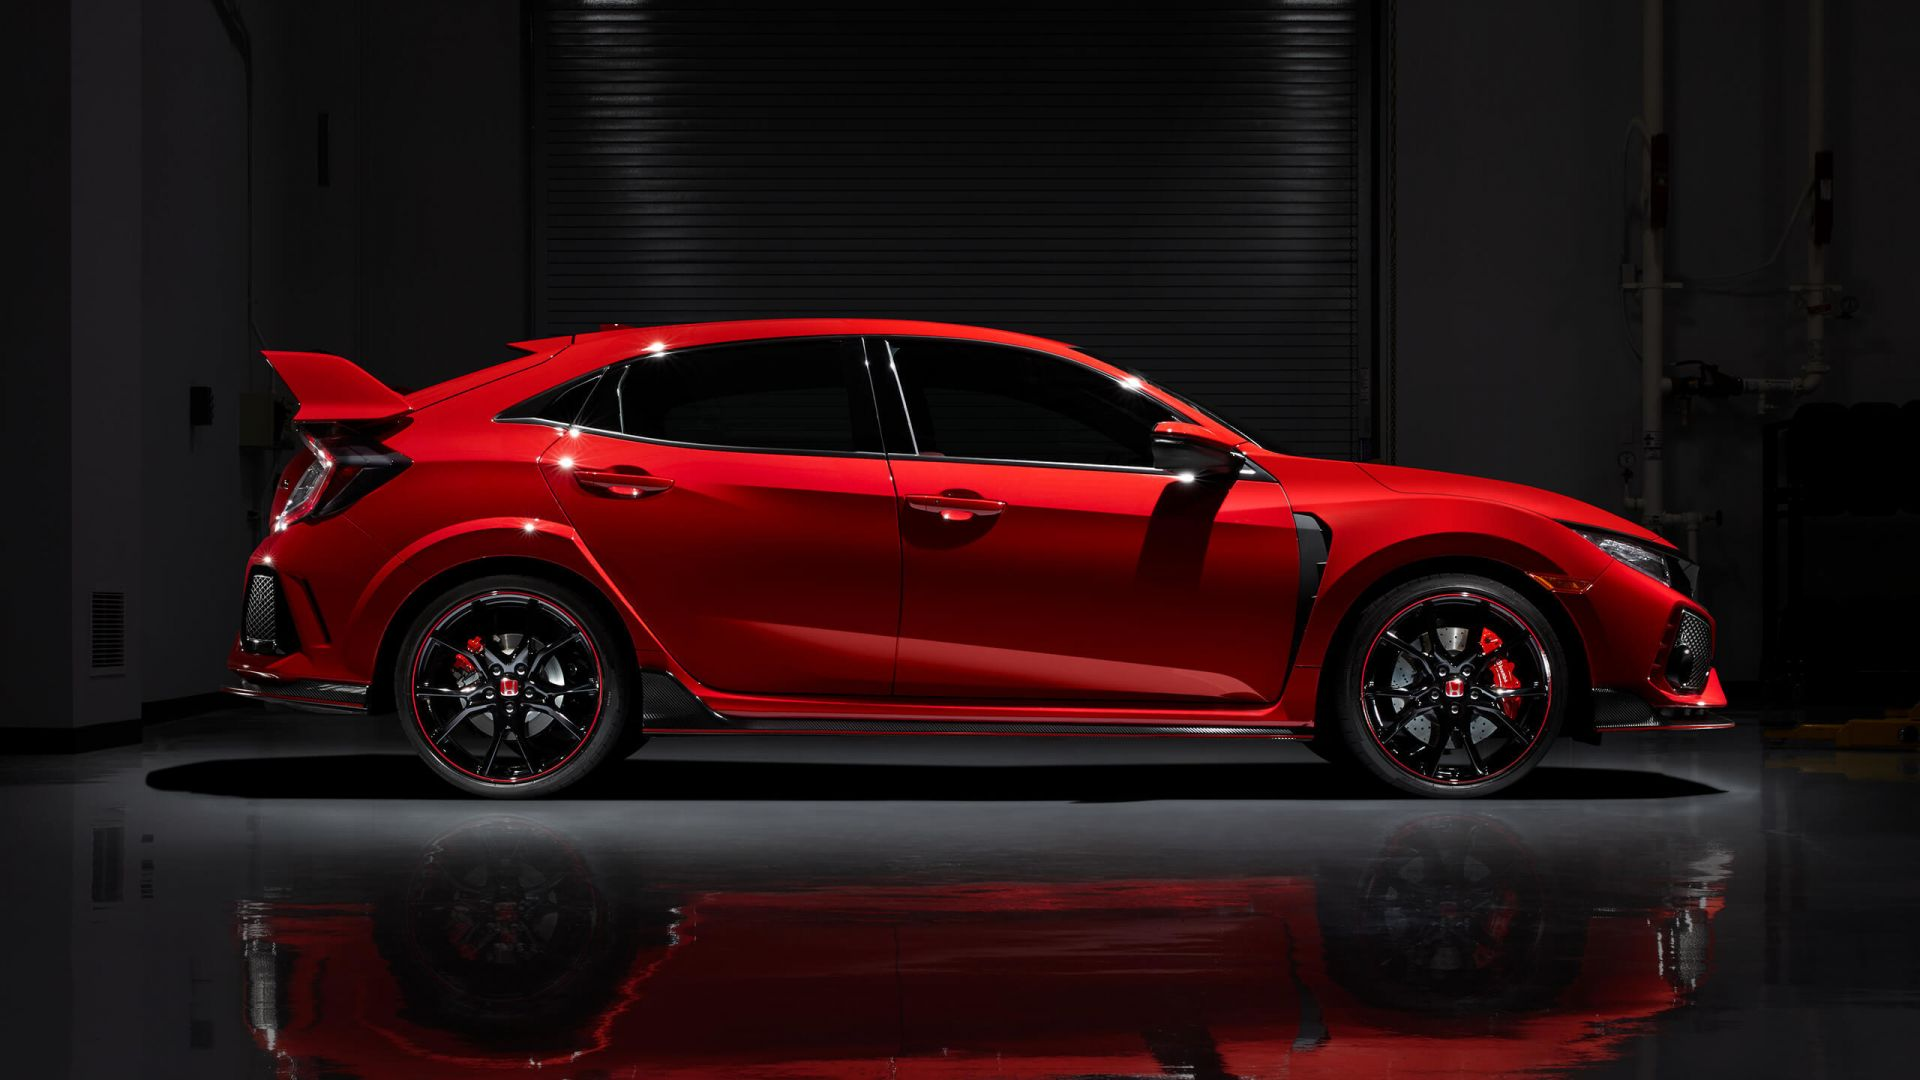 Cars Hd Wallpapers 1080p For Pc Bmw Desktop Wallpaper Red Honda Civic Type R Side View Car